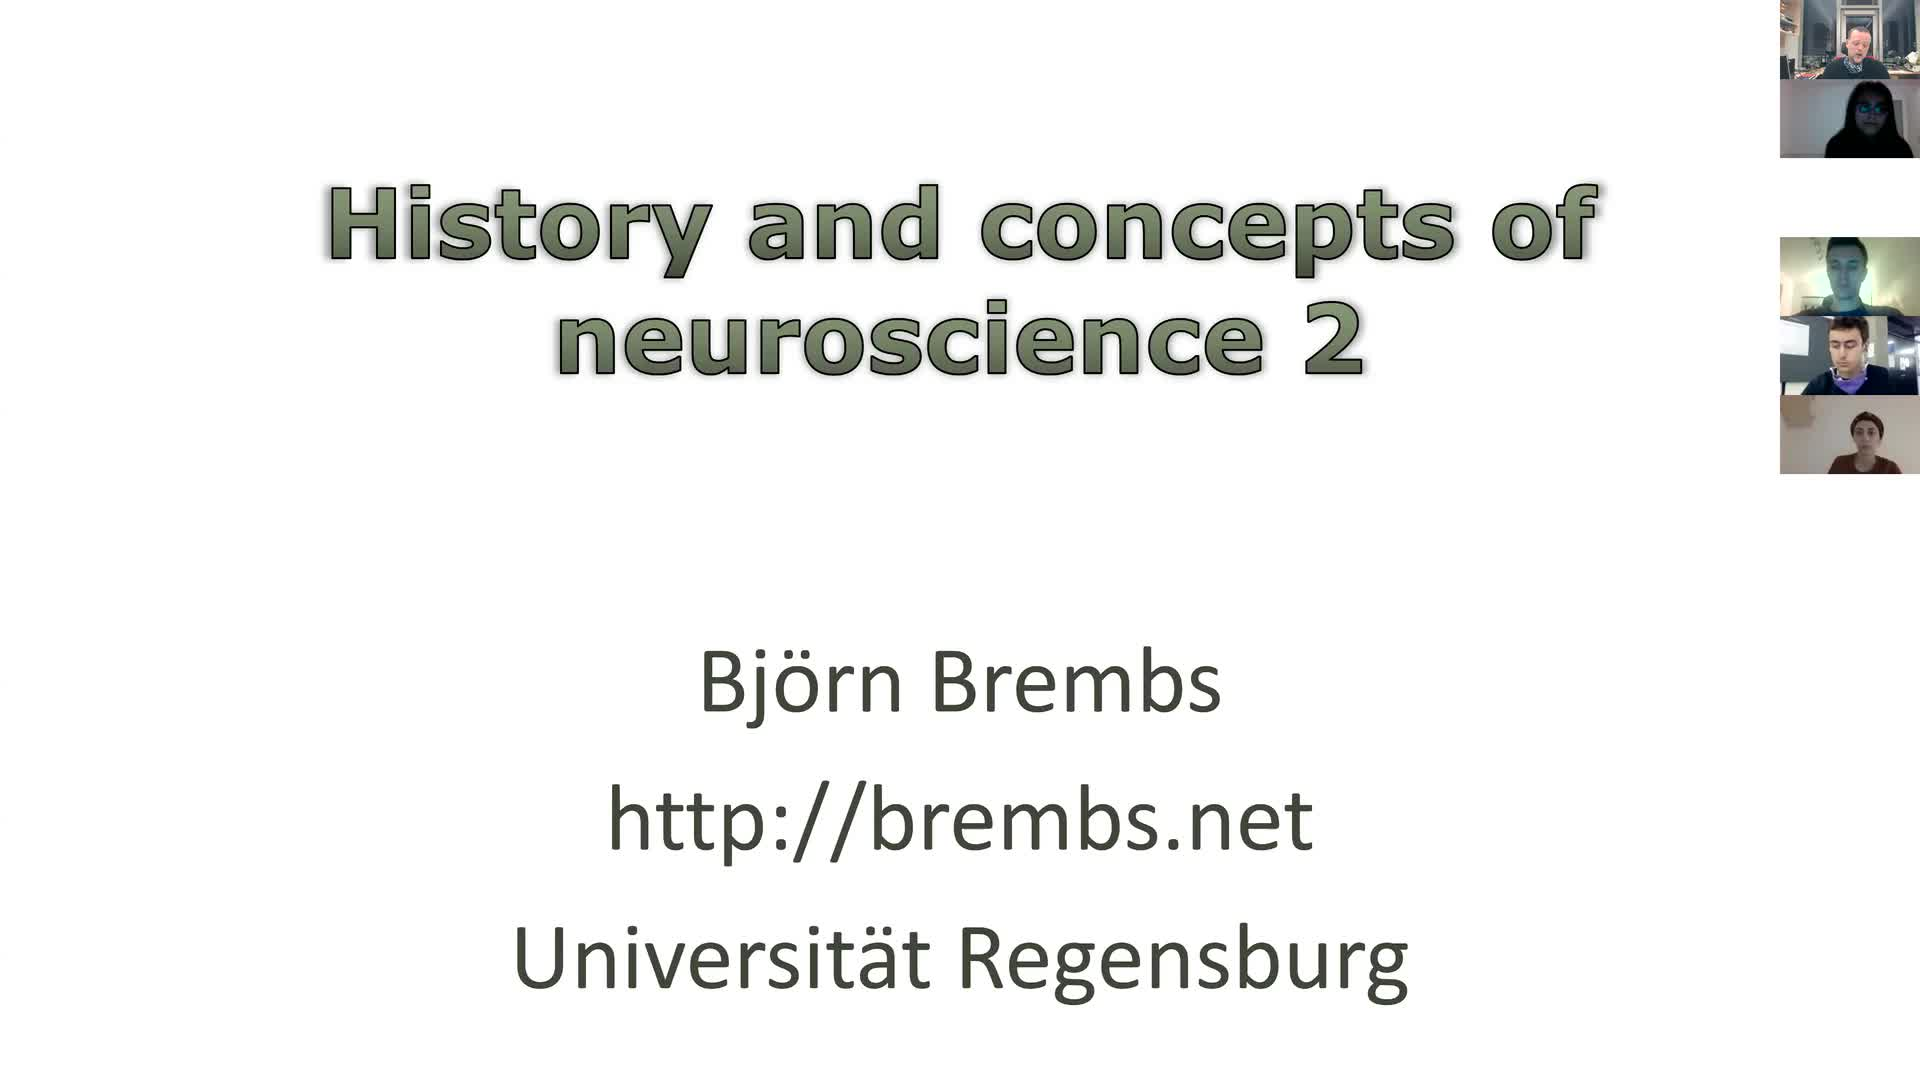 History and concepts of neuroscience 2